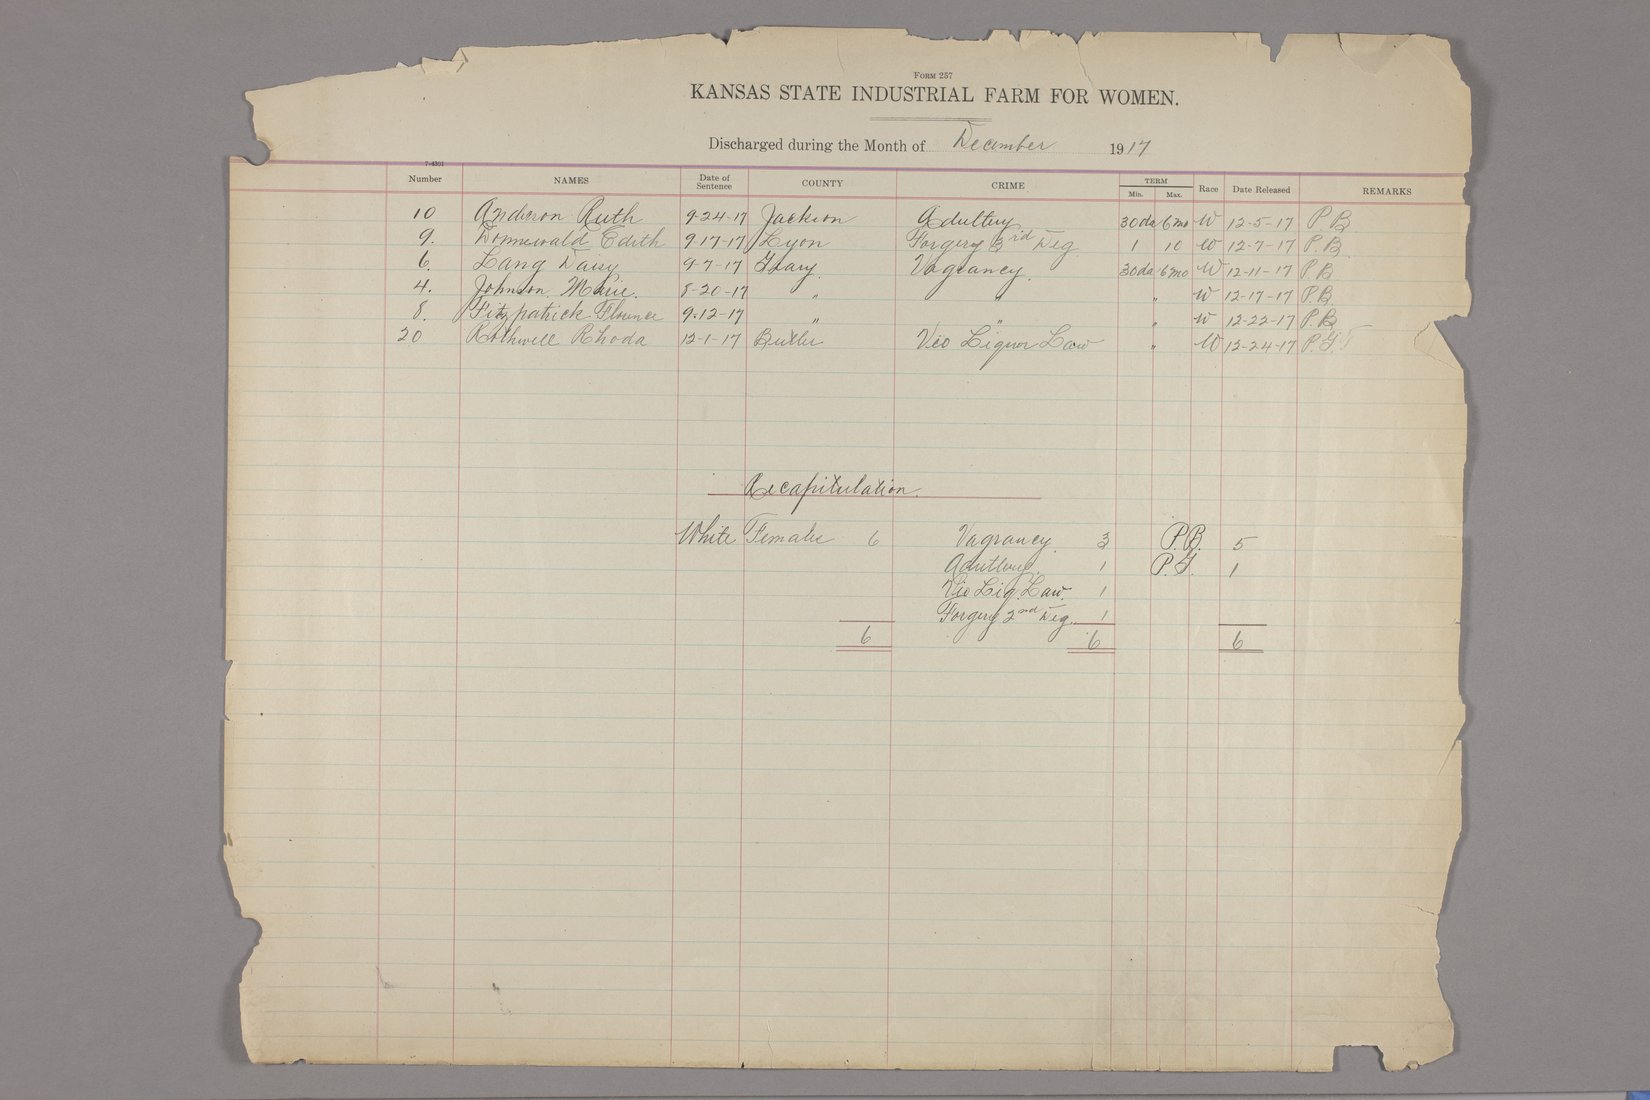 Inmates discharged register, Kansas State Industrial Farm for Women - December, 1917 & recapitulation page